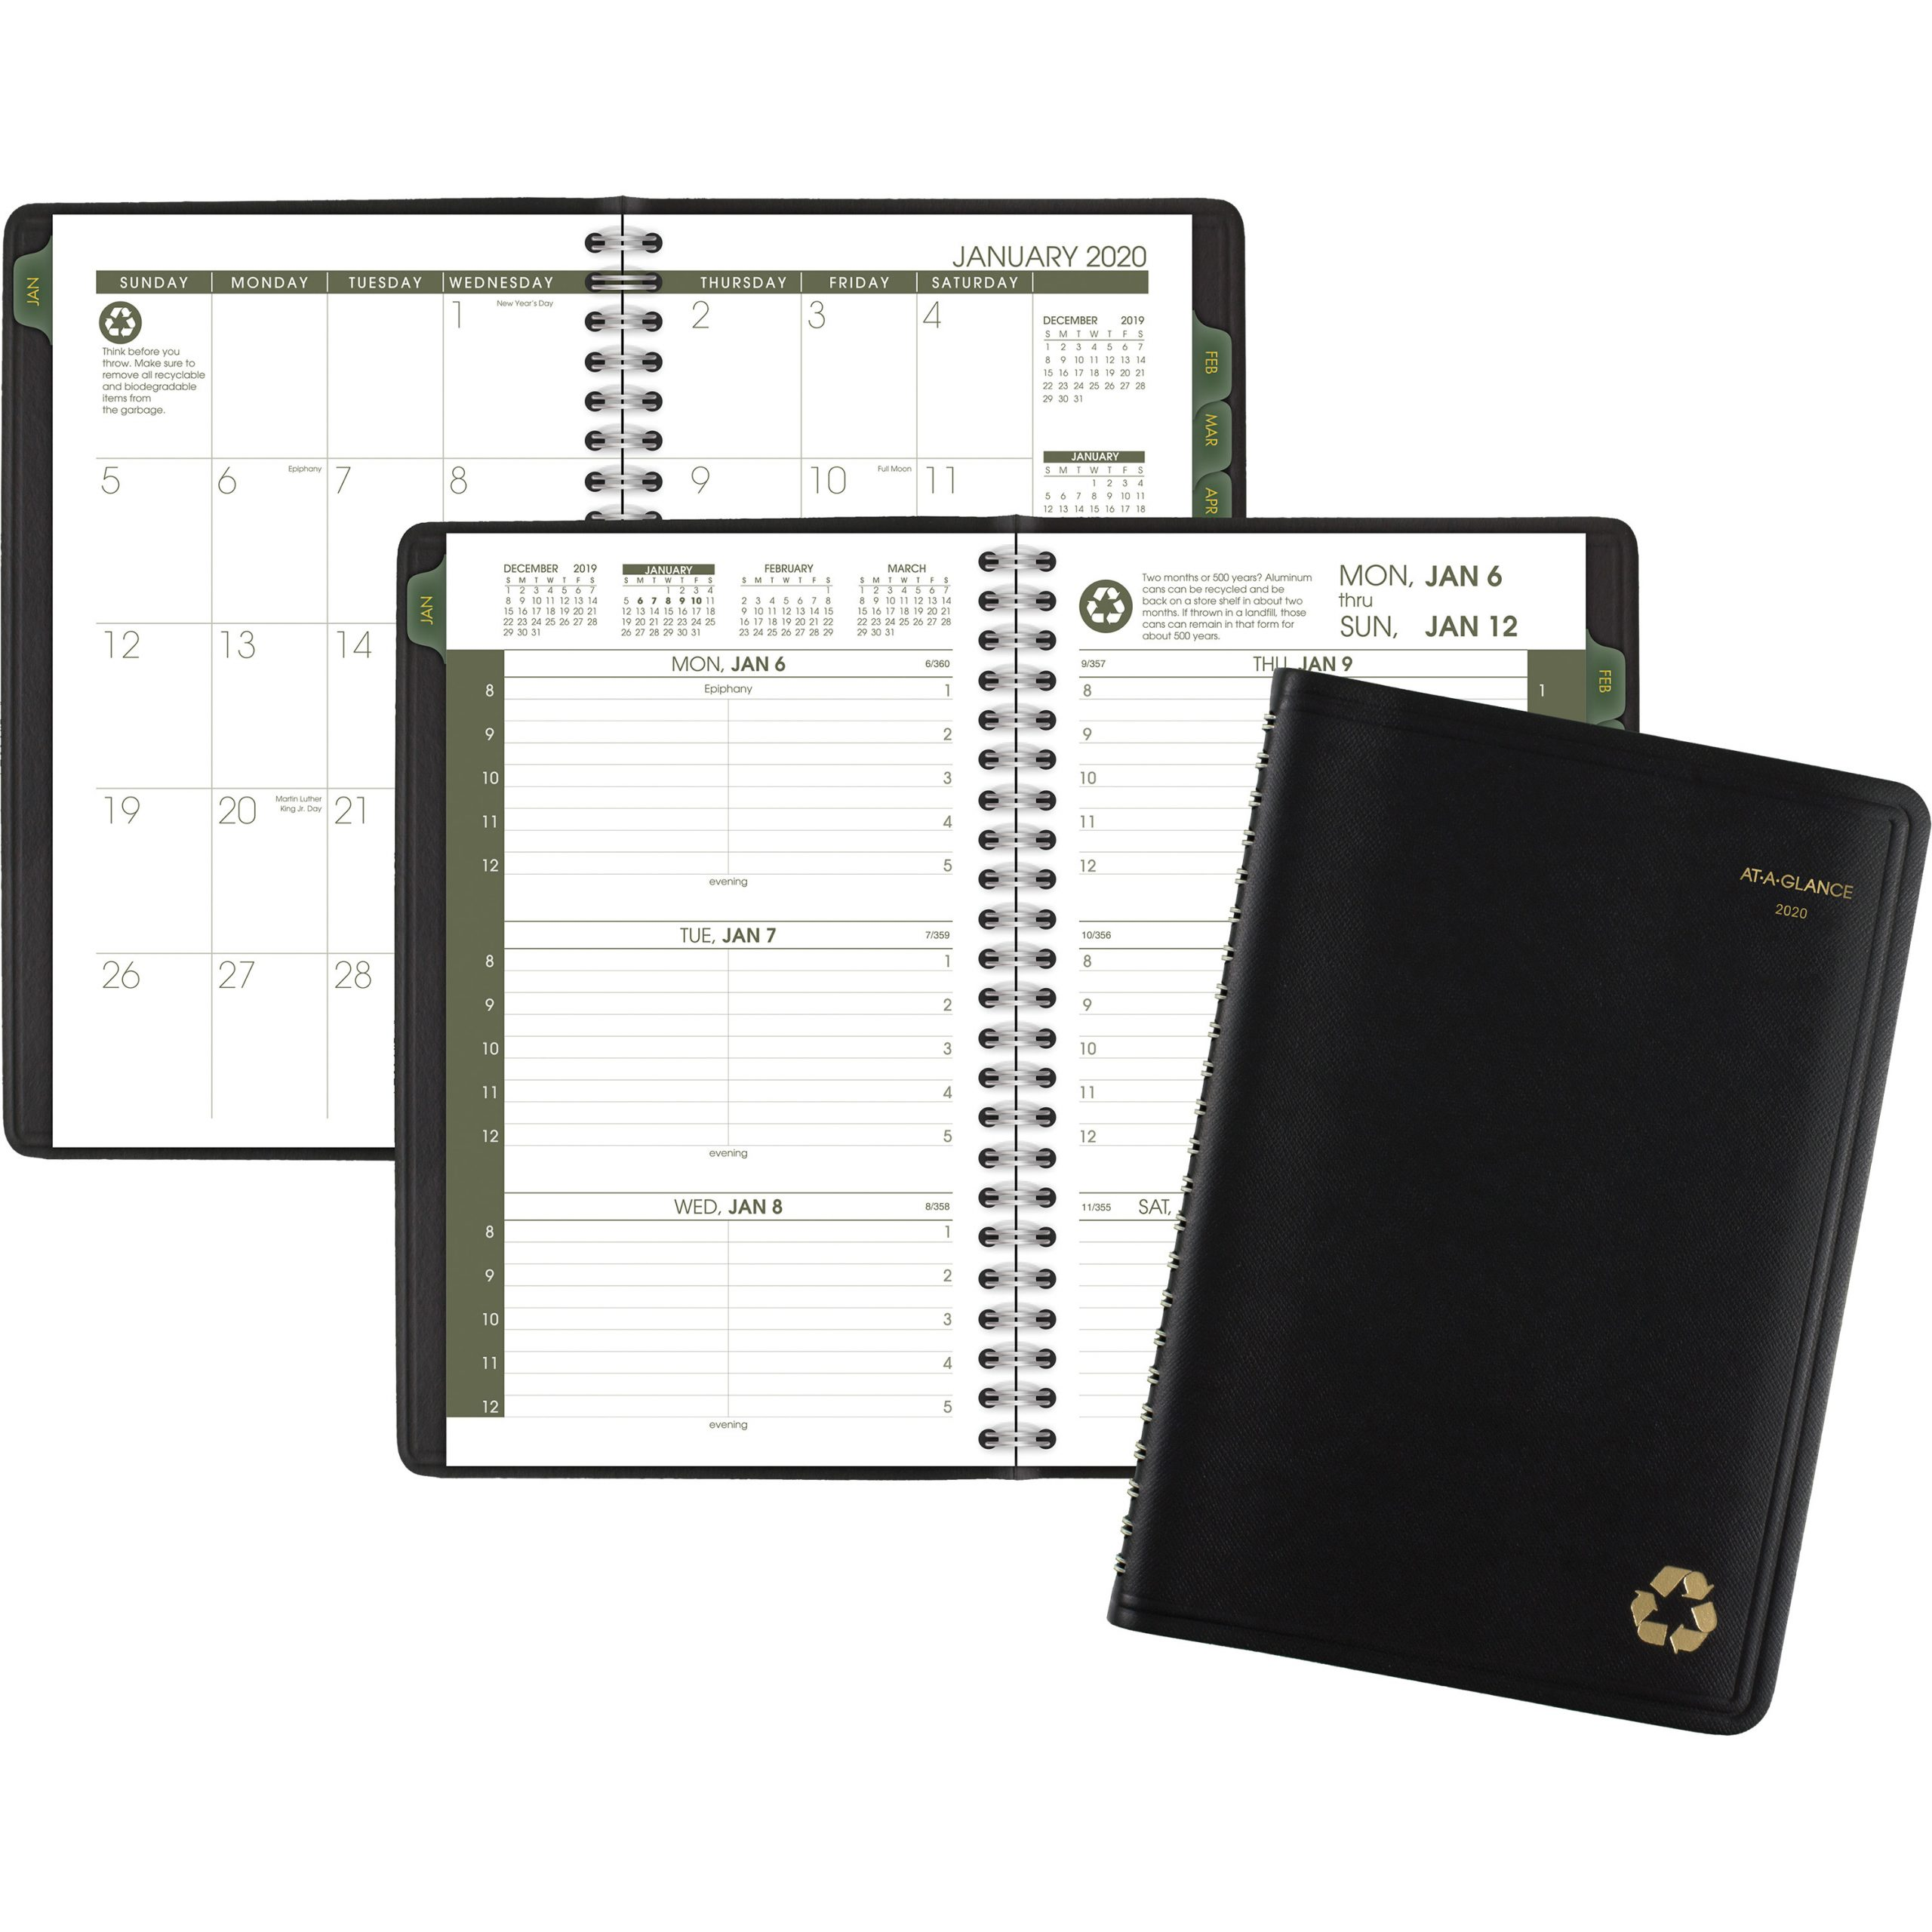 At-A-Glance 100% Recycled Weekly/monthly Appointment Book - Yes - Weekly -  January 2020 Till December 2020 - 8:00 Am To 5:00 Pm - 1 Week Double Page